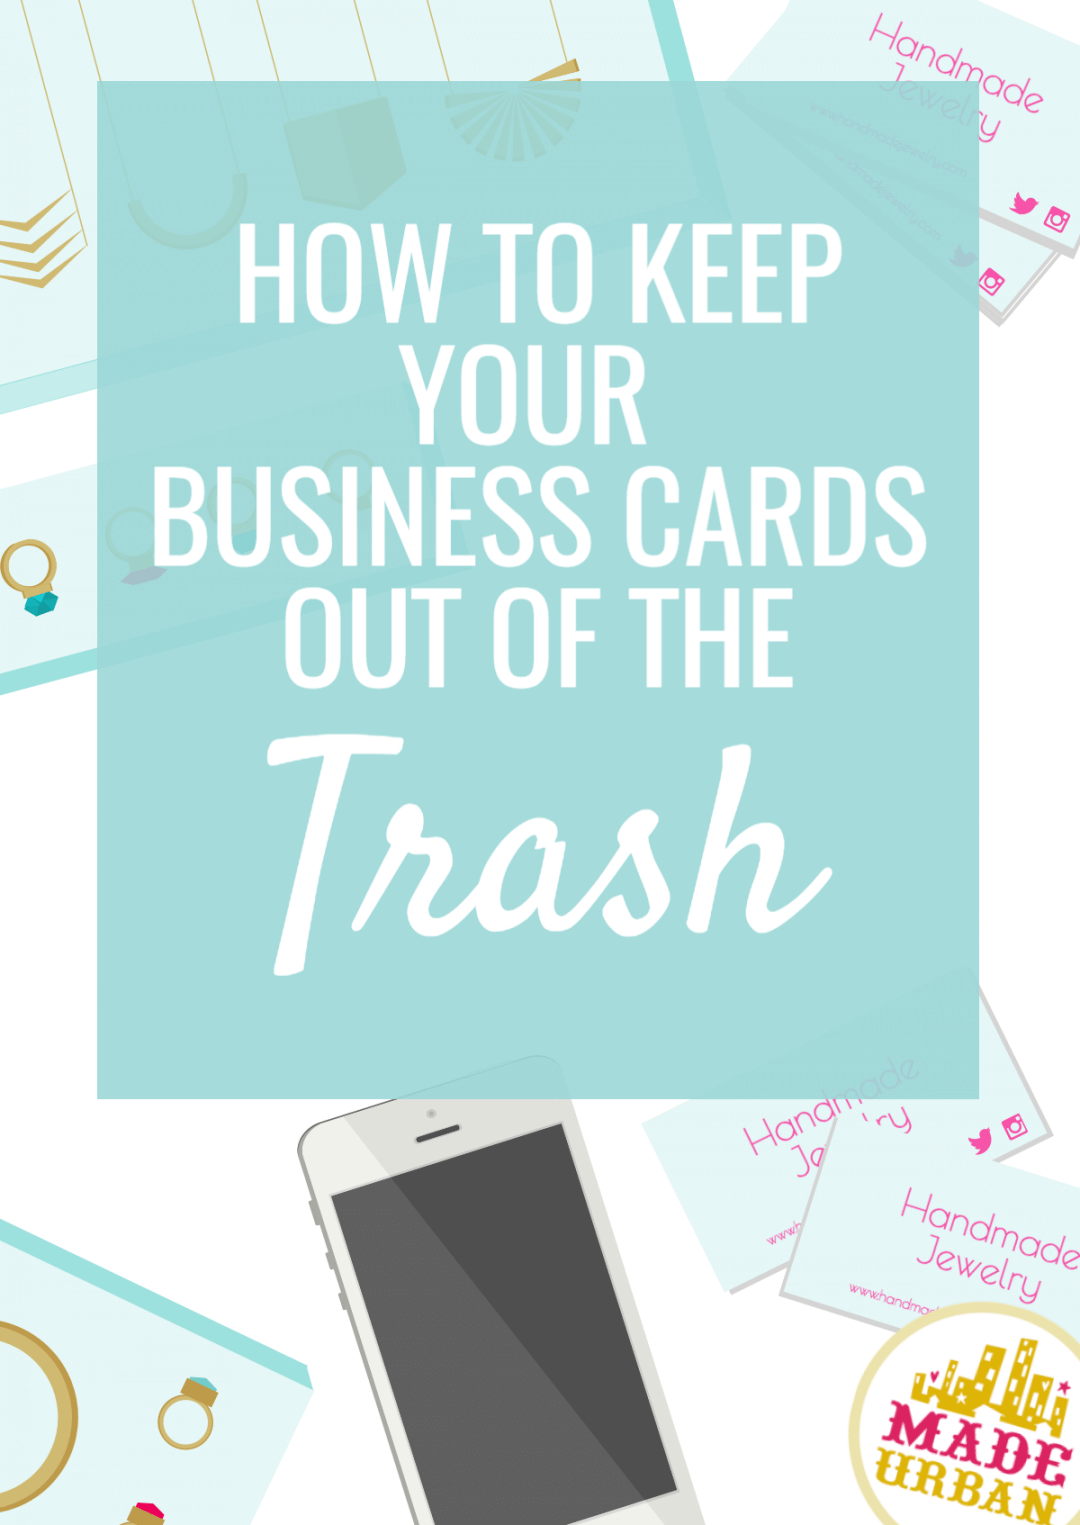 How to Keep your Business Cards Out of the Trash